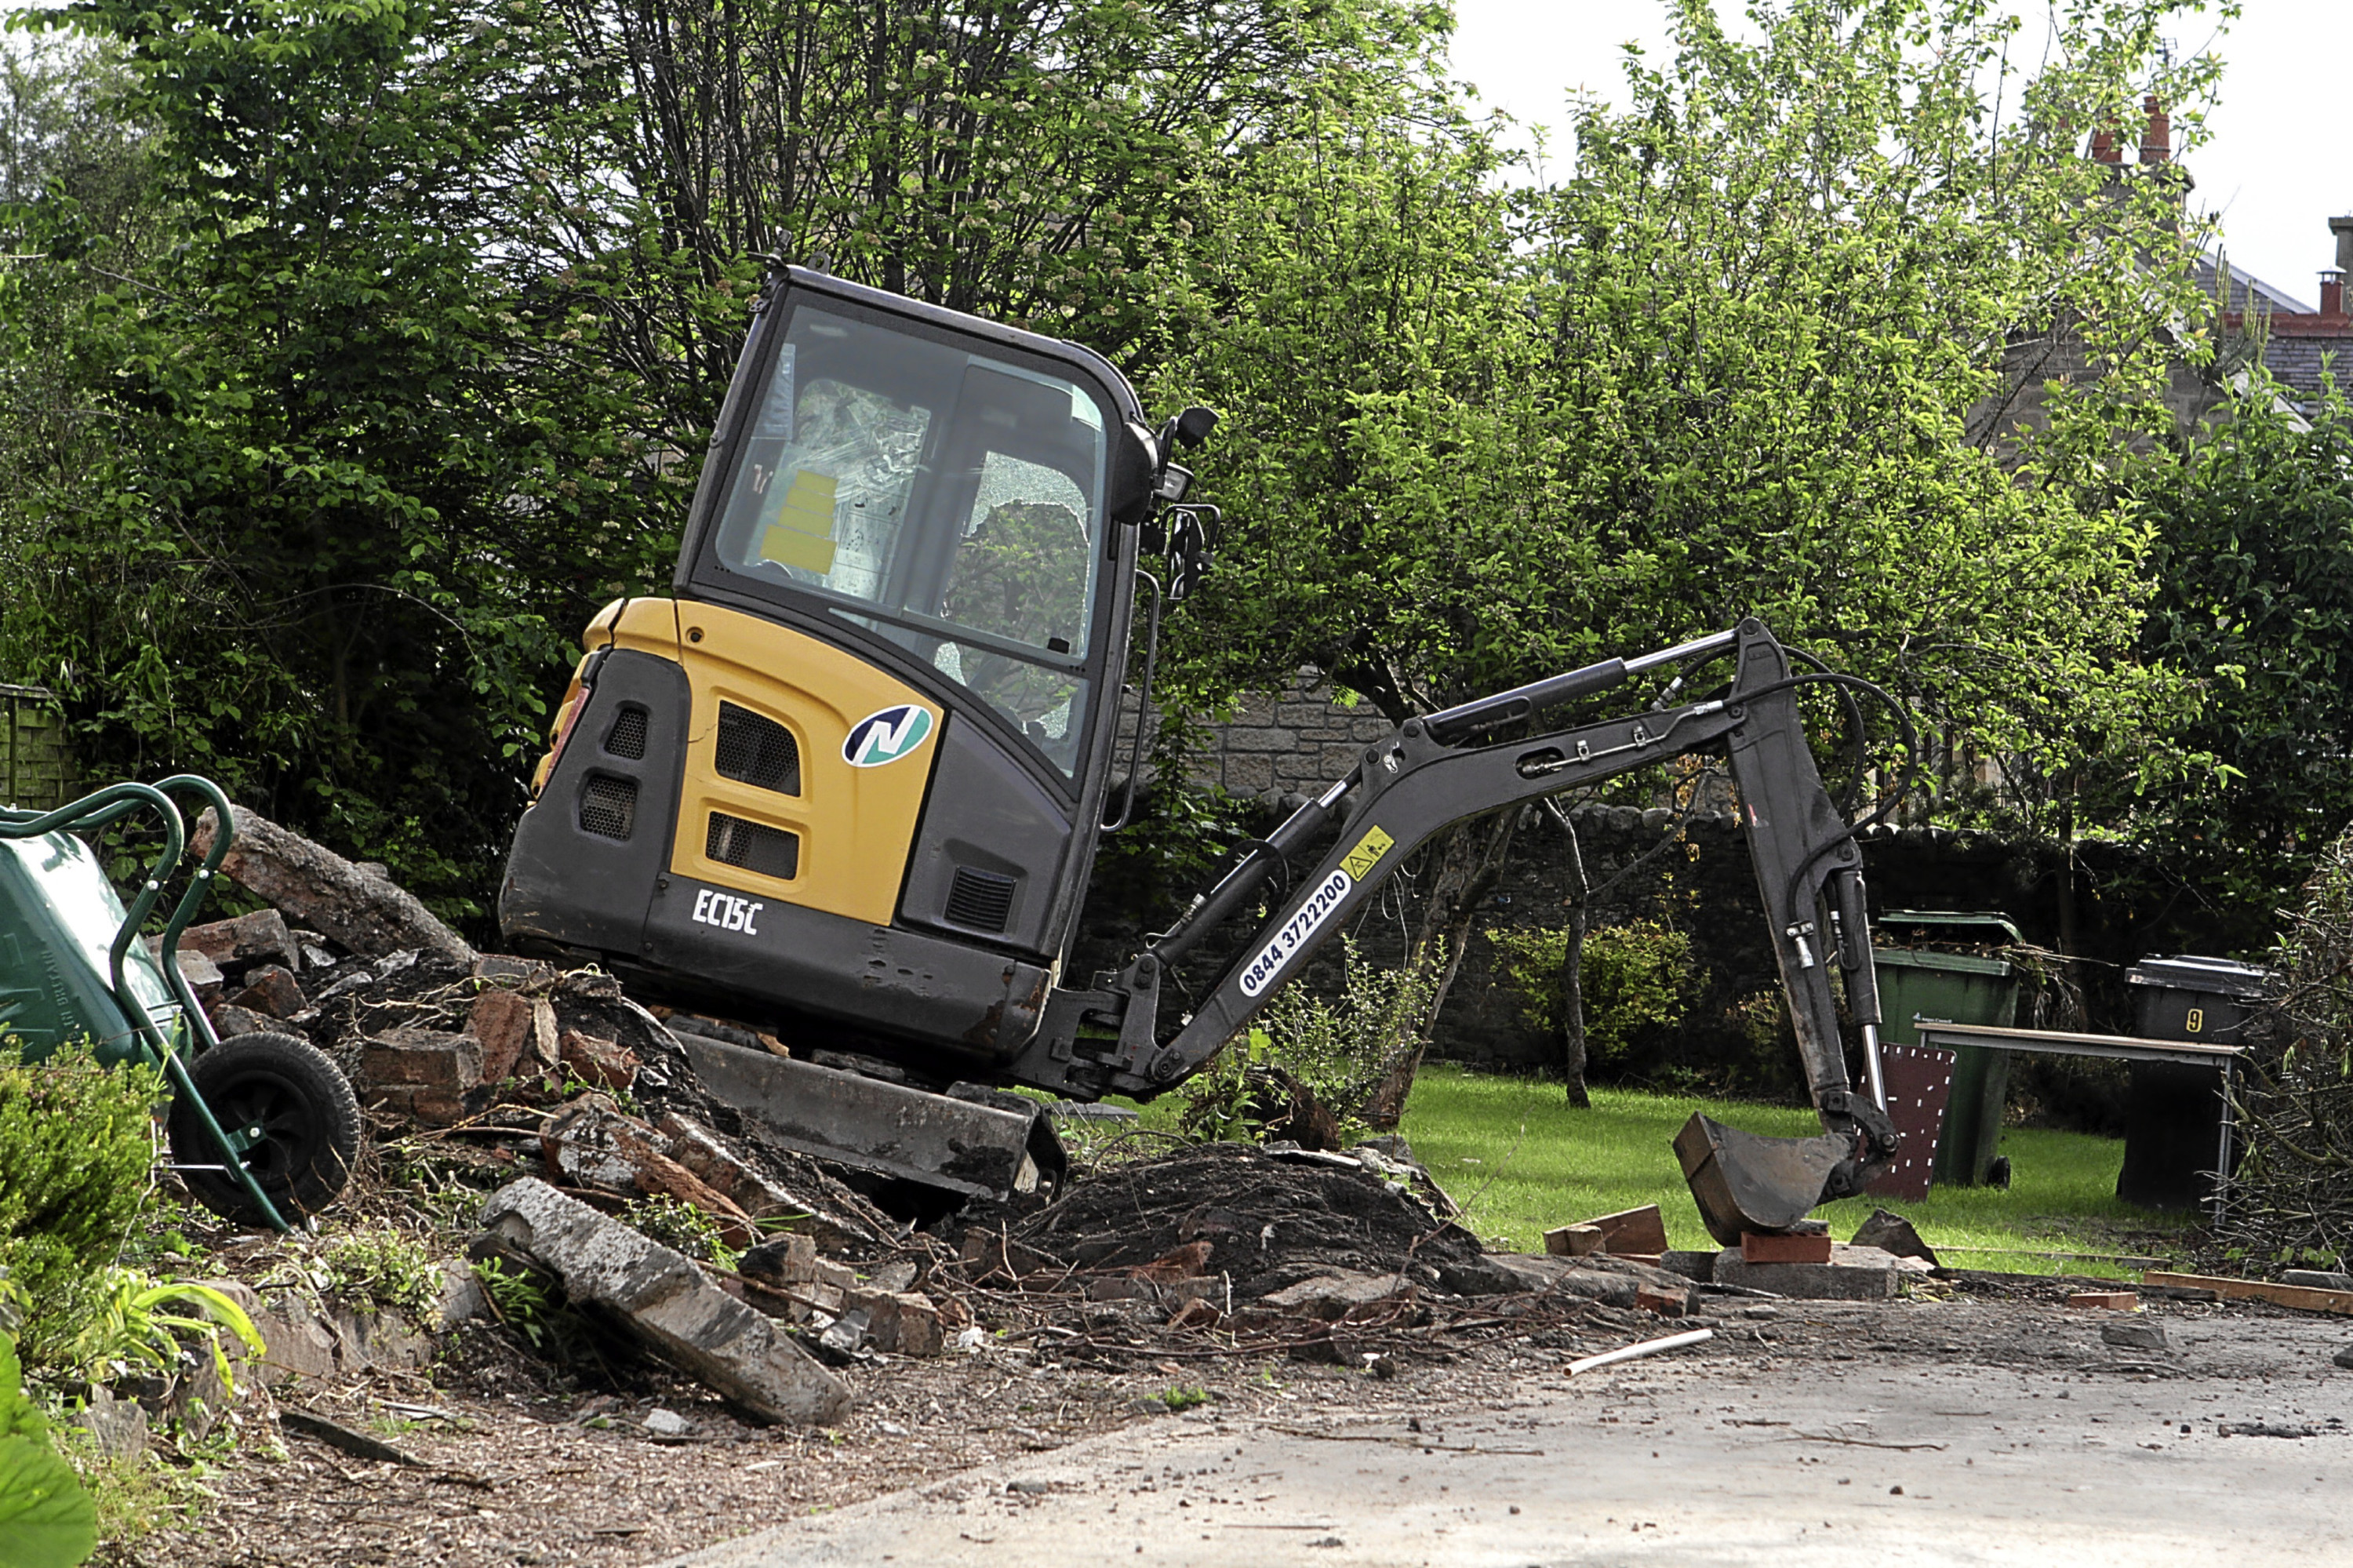 The damaged digger on Green Lane in Carnoustie. A man was taken to hospital after his foot was crushed.